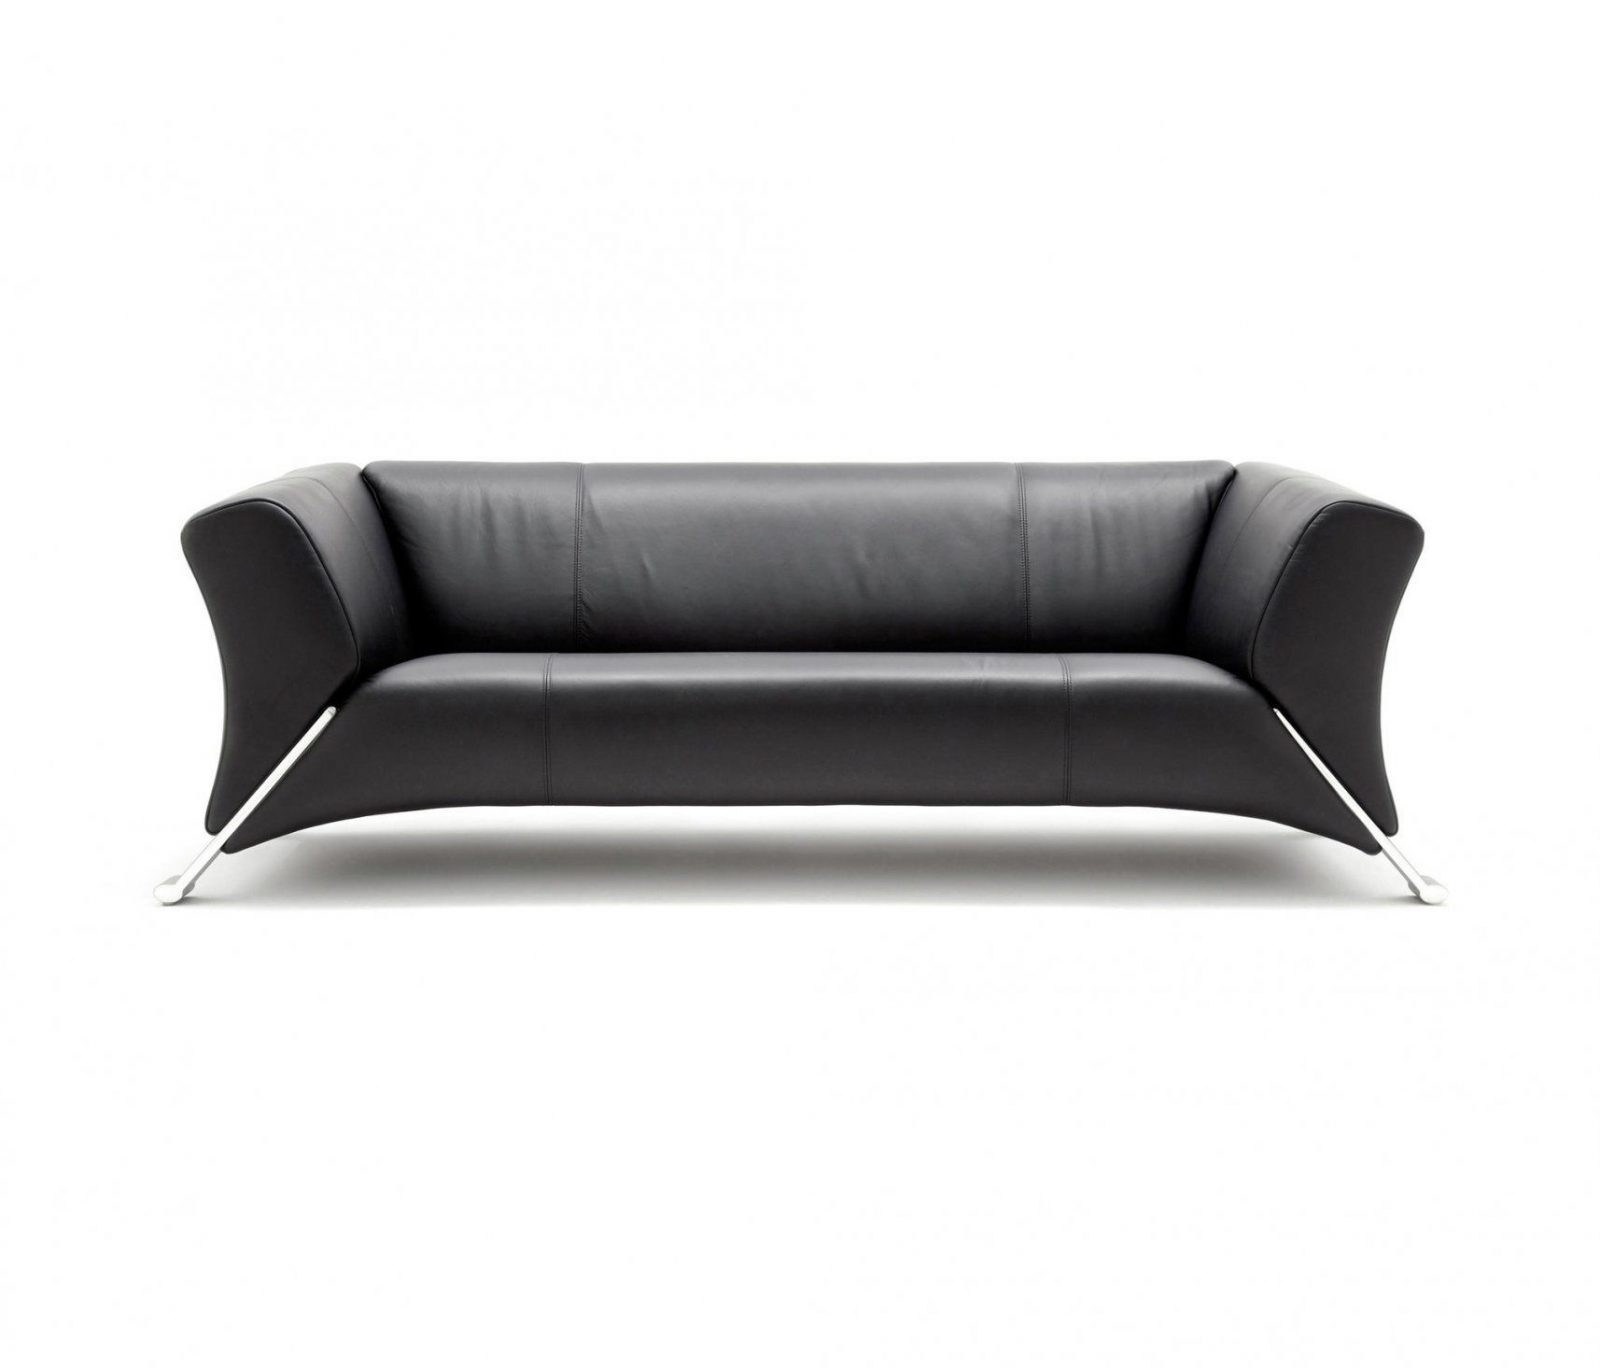 Rolf Benz 322  Lounge Sofas From Rolf Benz  Architonic von Rolf Benz Sessel 322 Photo